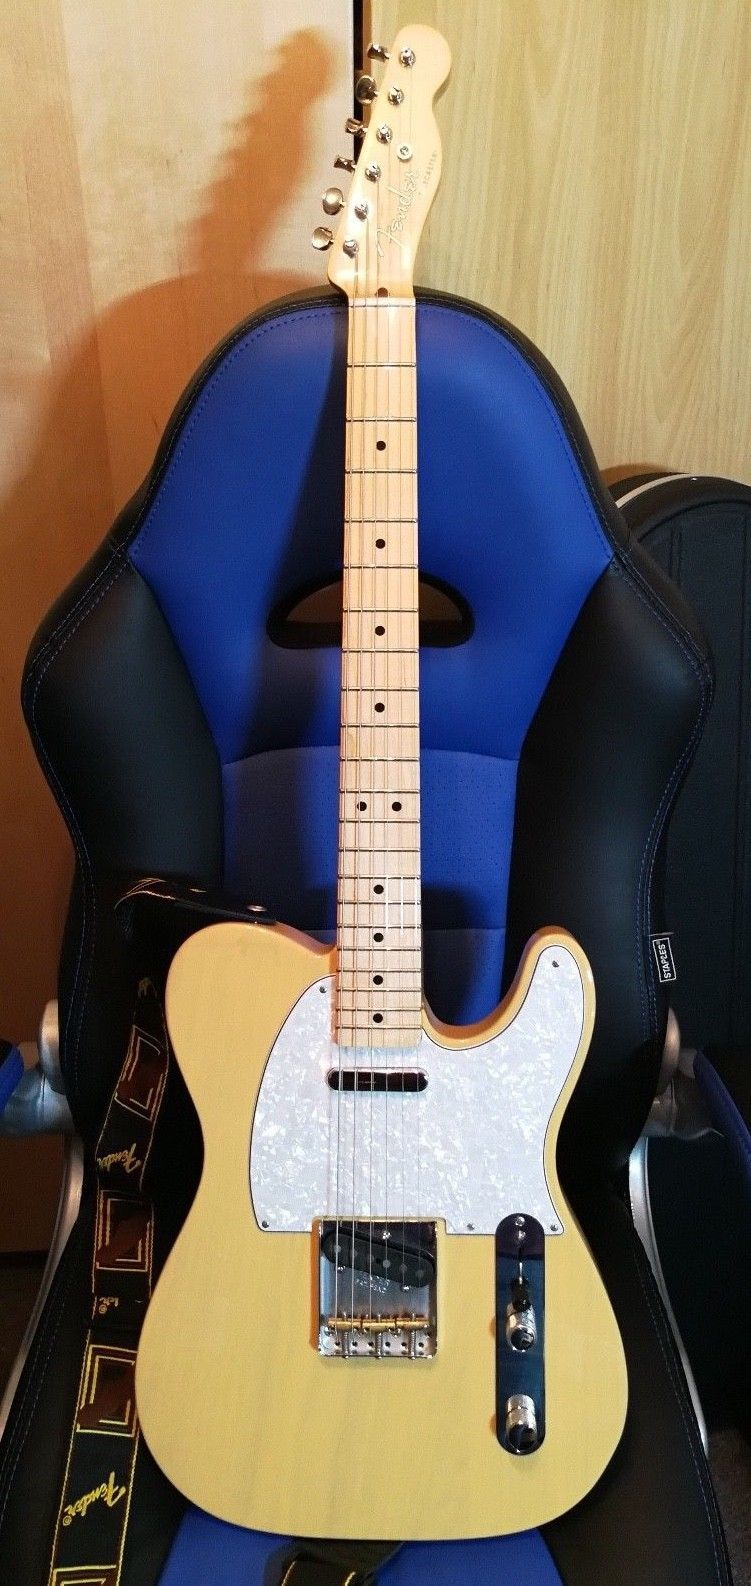 Fender Classic Player Baja Telecaster Blonde With Gig Bag 3 Pick Guards Strap Telecaster Prs Guitar Fender Guitars